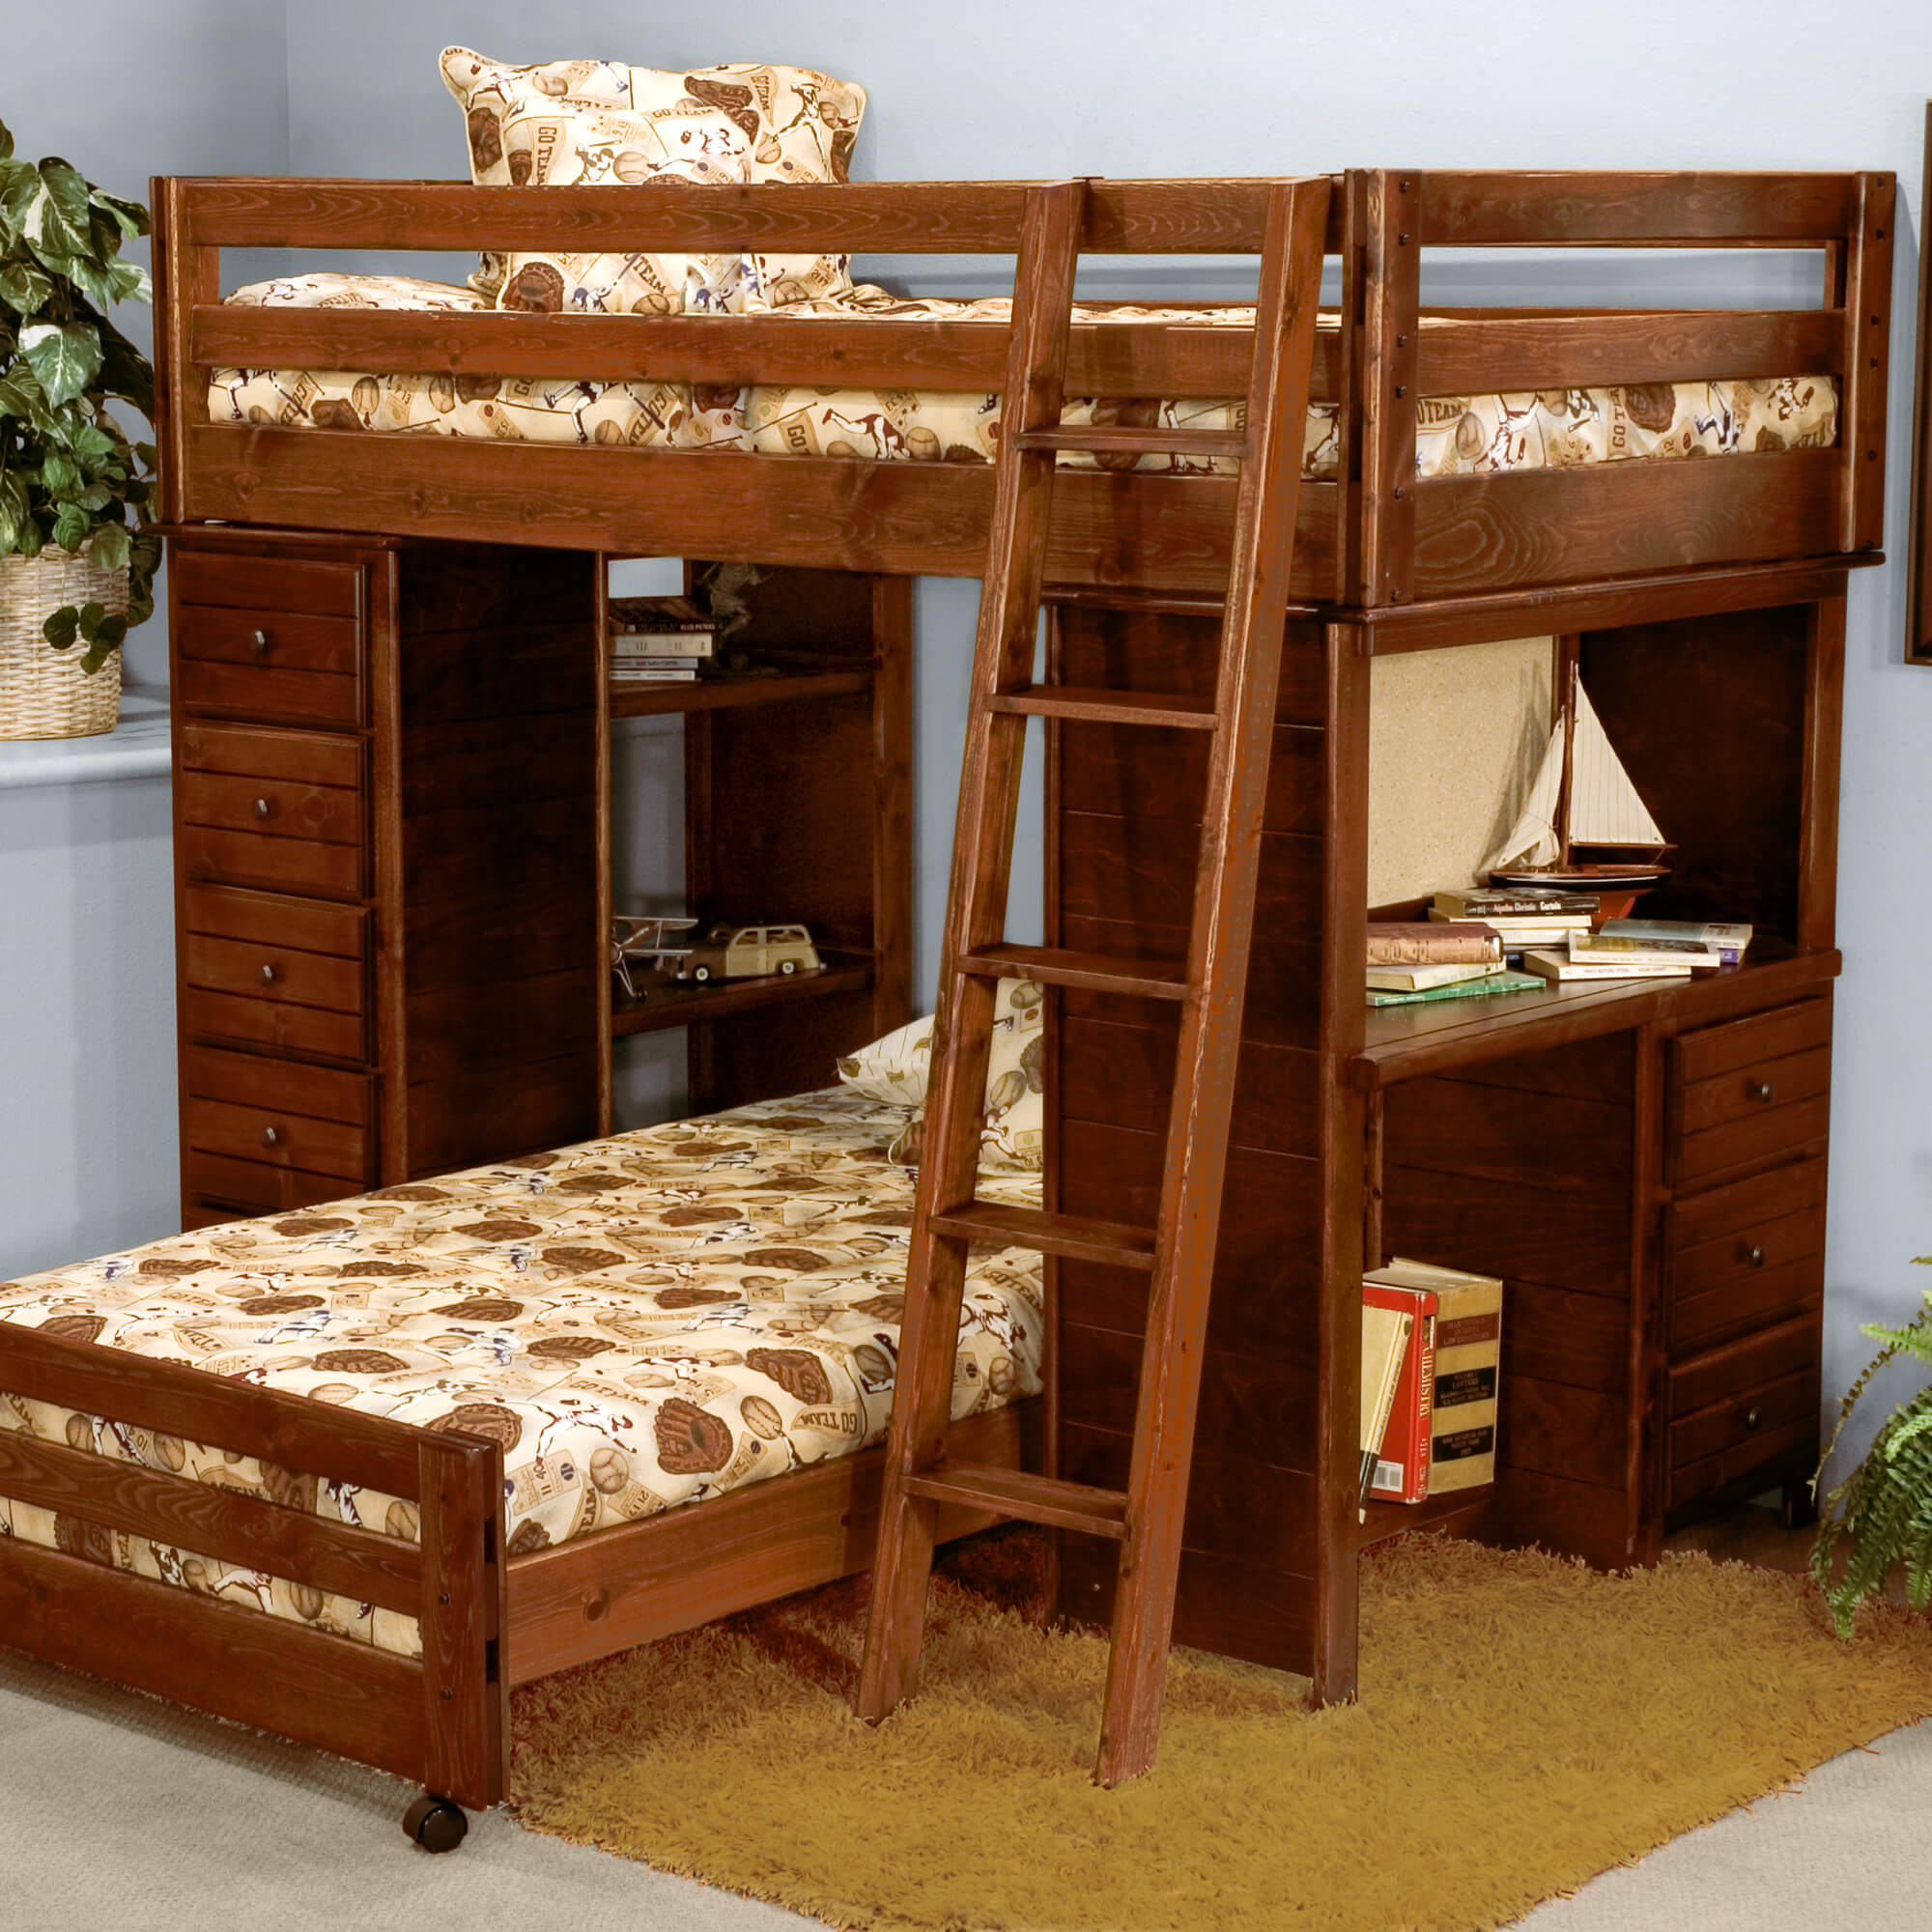 Bunk bed with desk underneath plans - Bunk Bed With Desk Underneath Plans 56